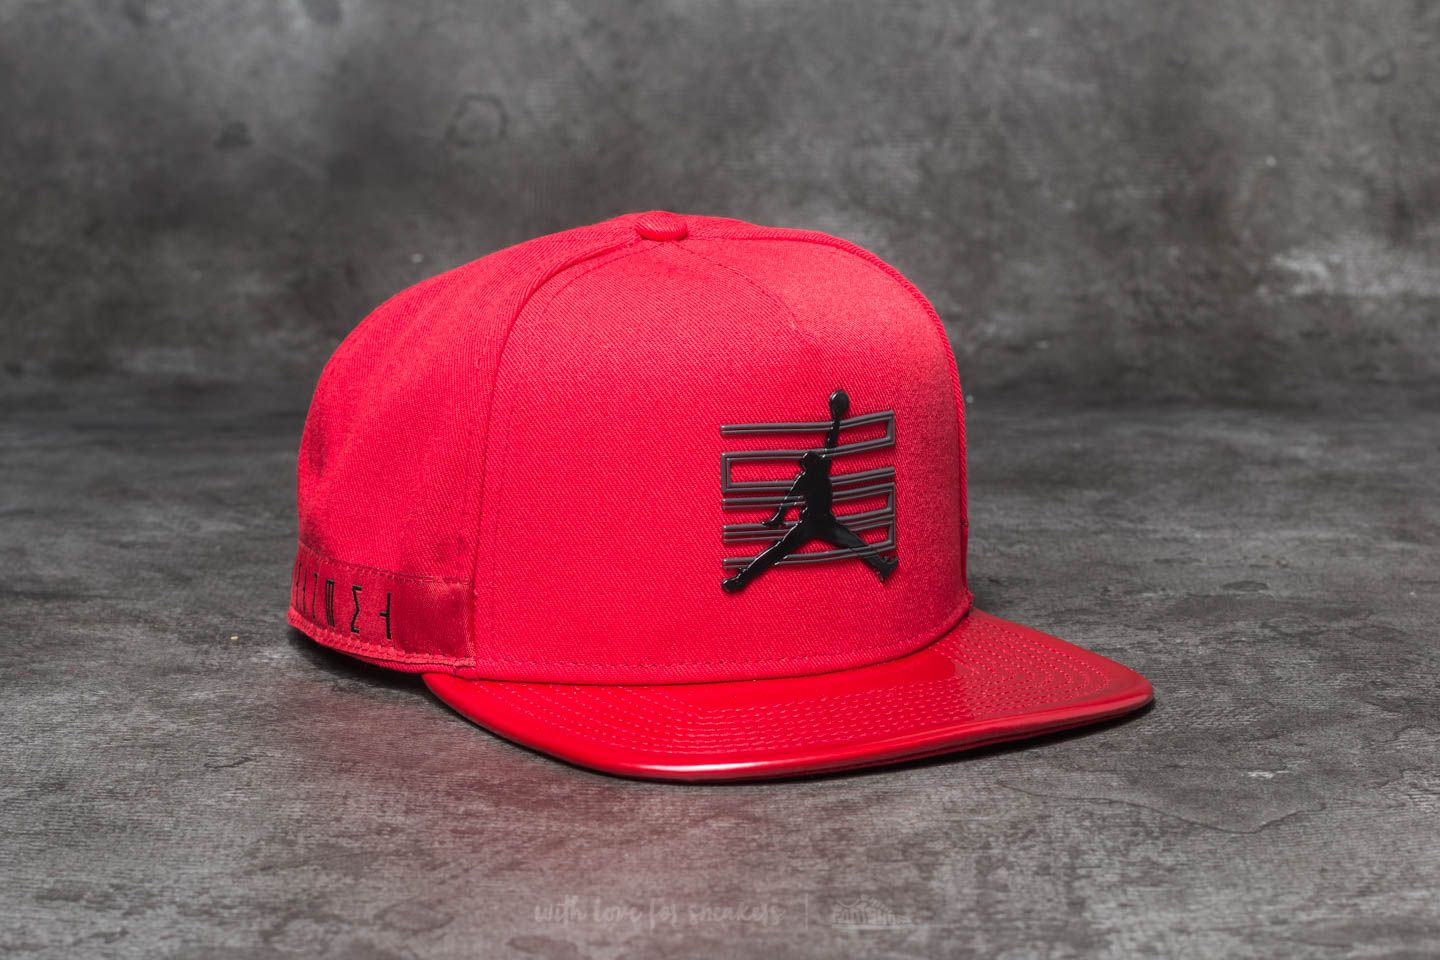 fec45e23c8e ... discount code for jordan 11 snapback gym red gym red black c19c0 34f2c